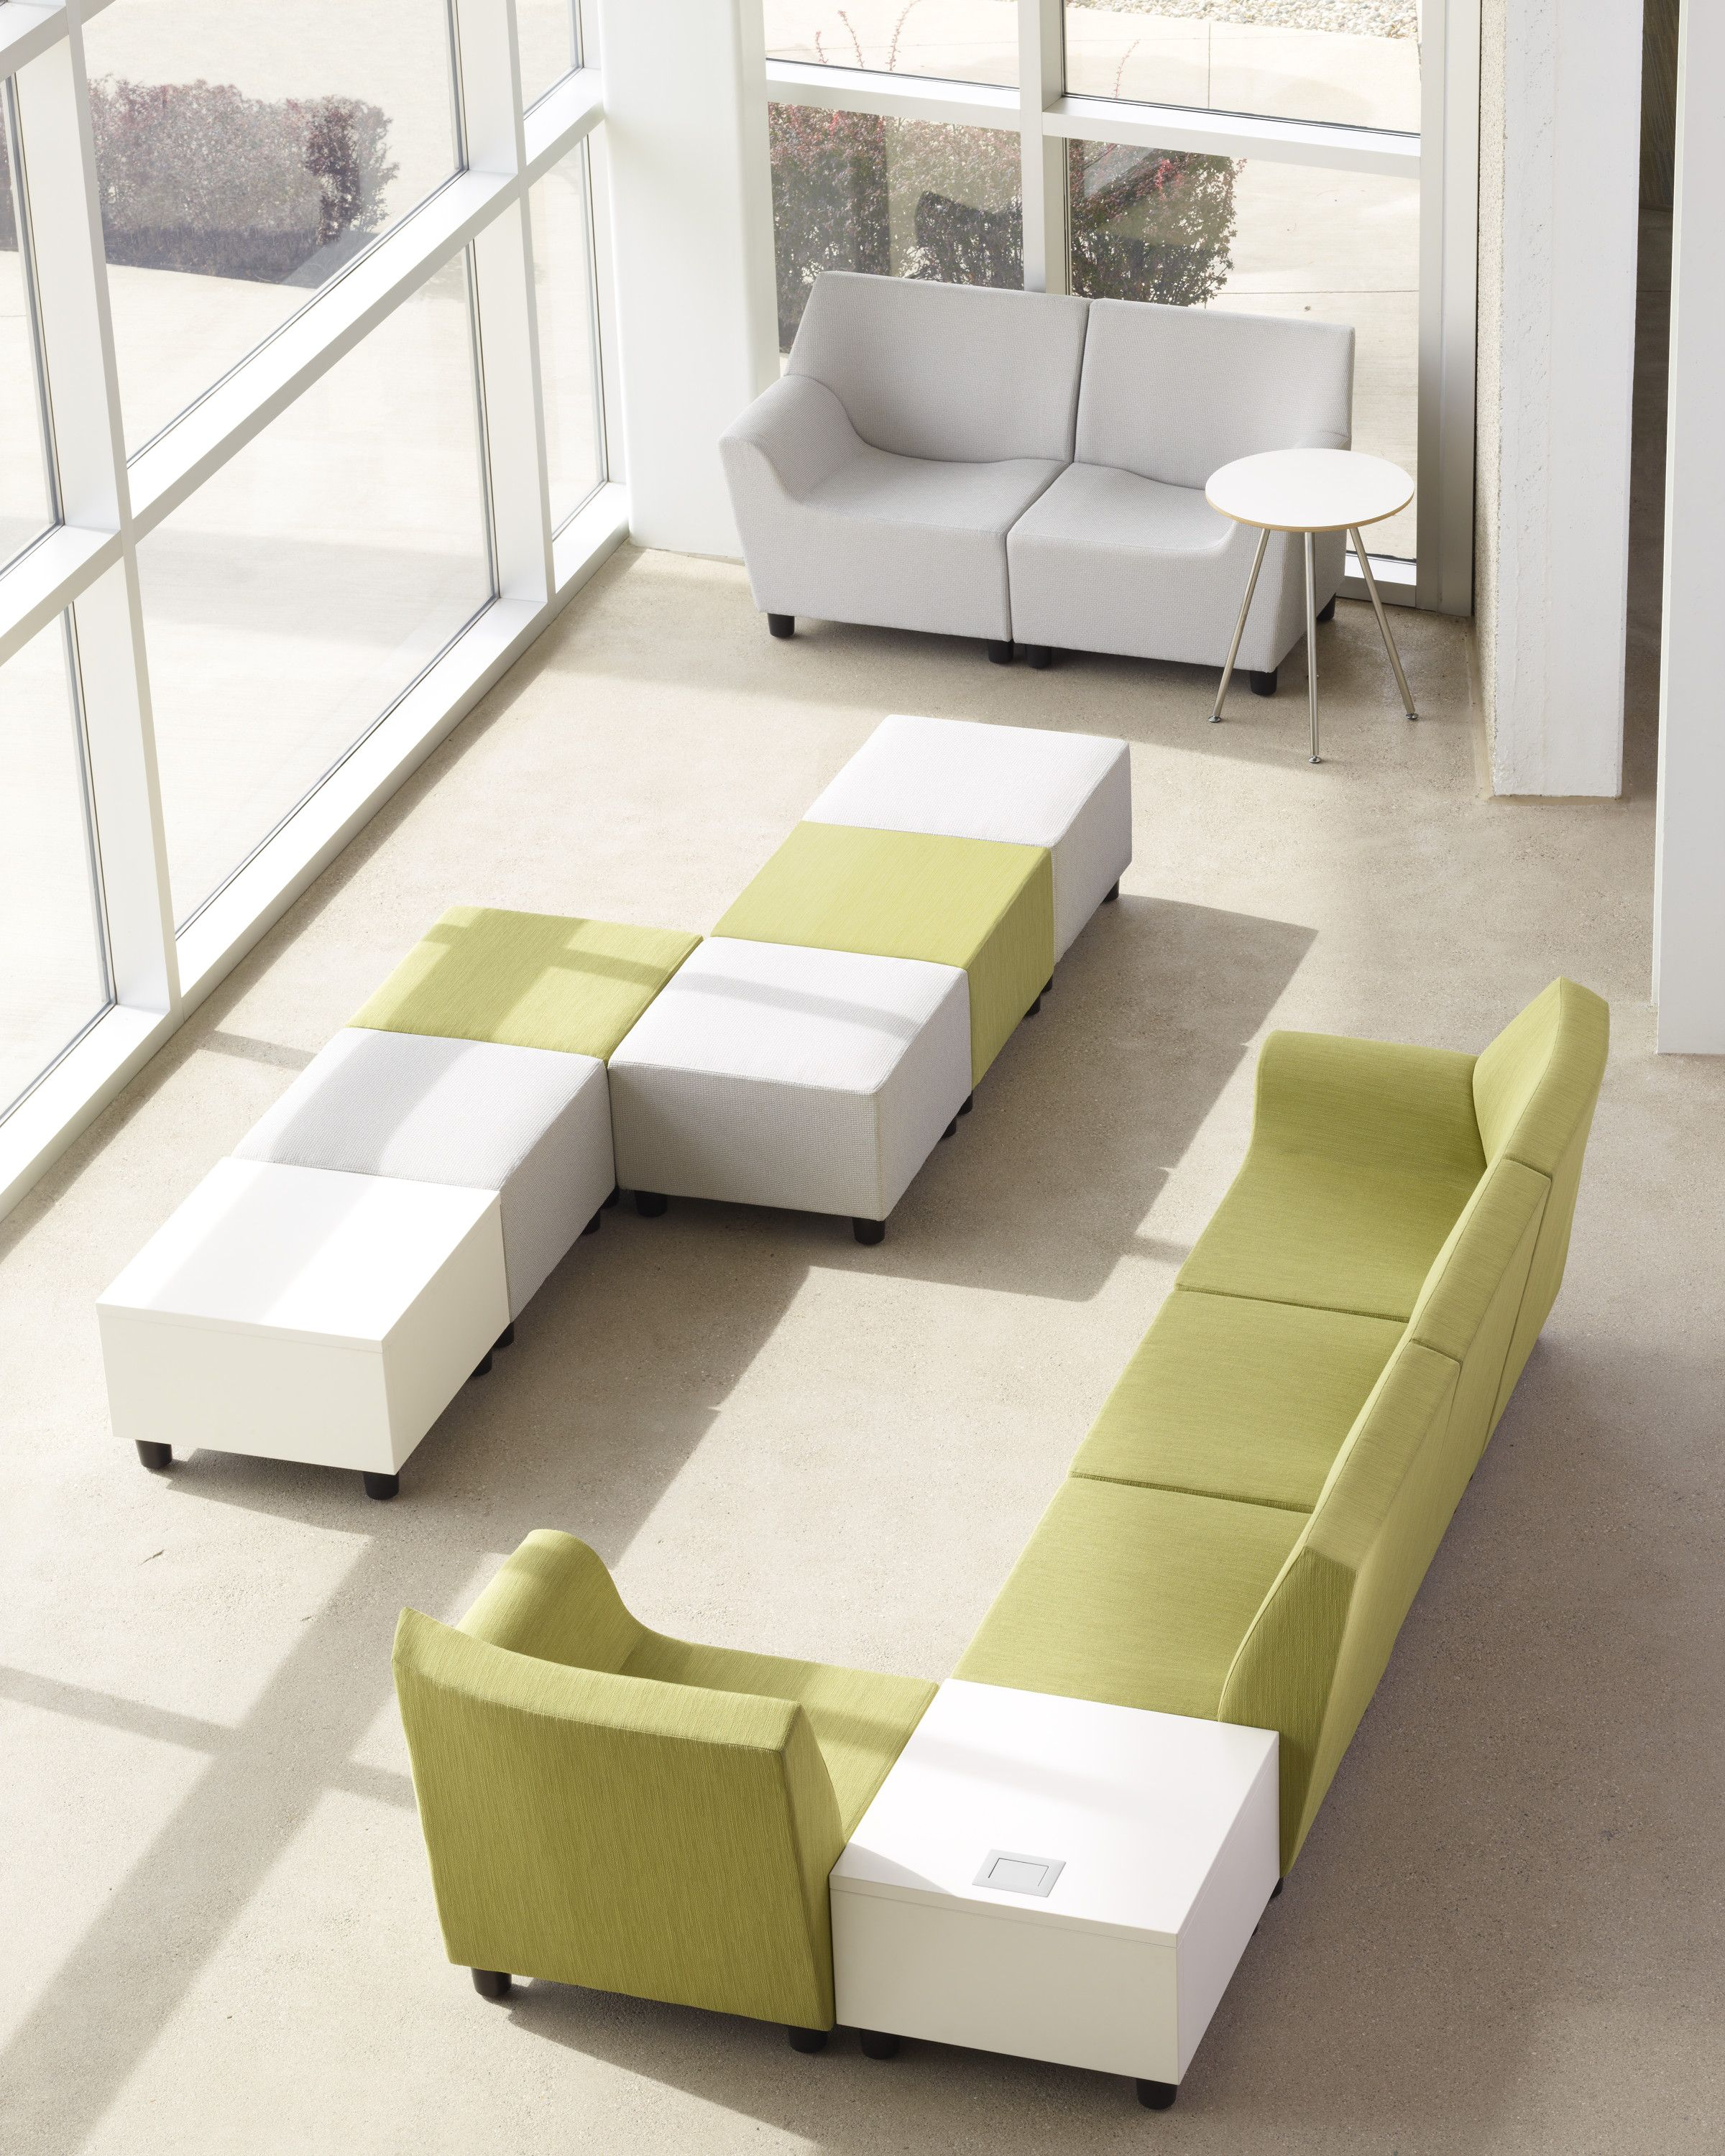 Divan Muebles Swoop Lounge Furniture Collaboration Space Imagina